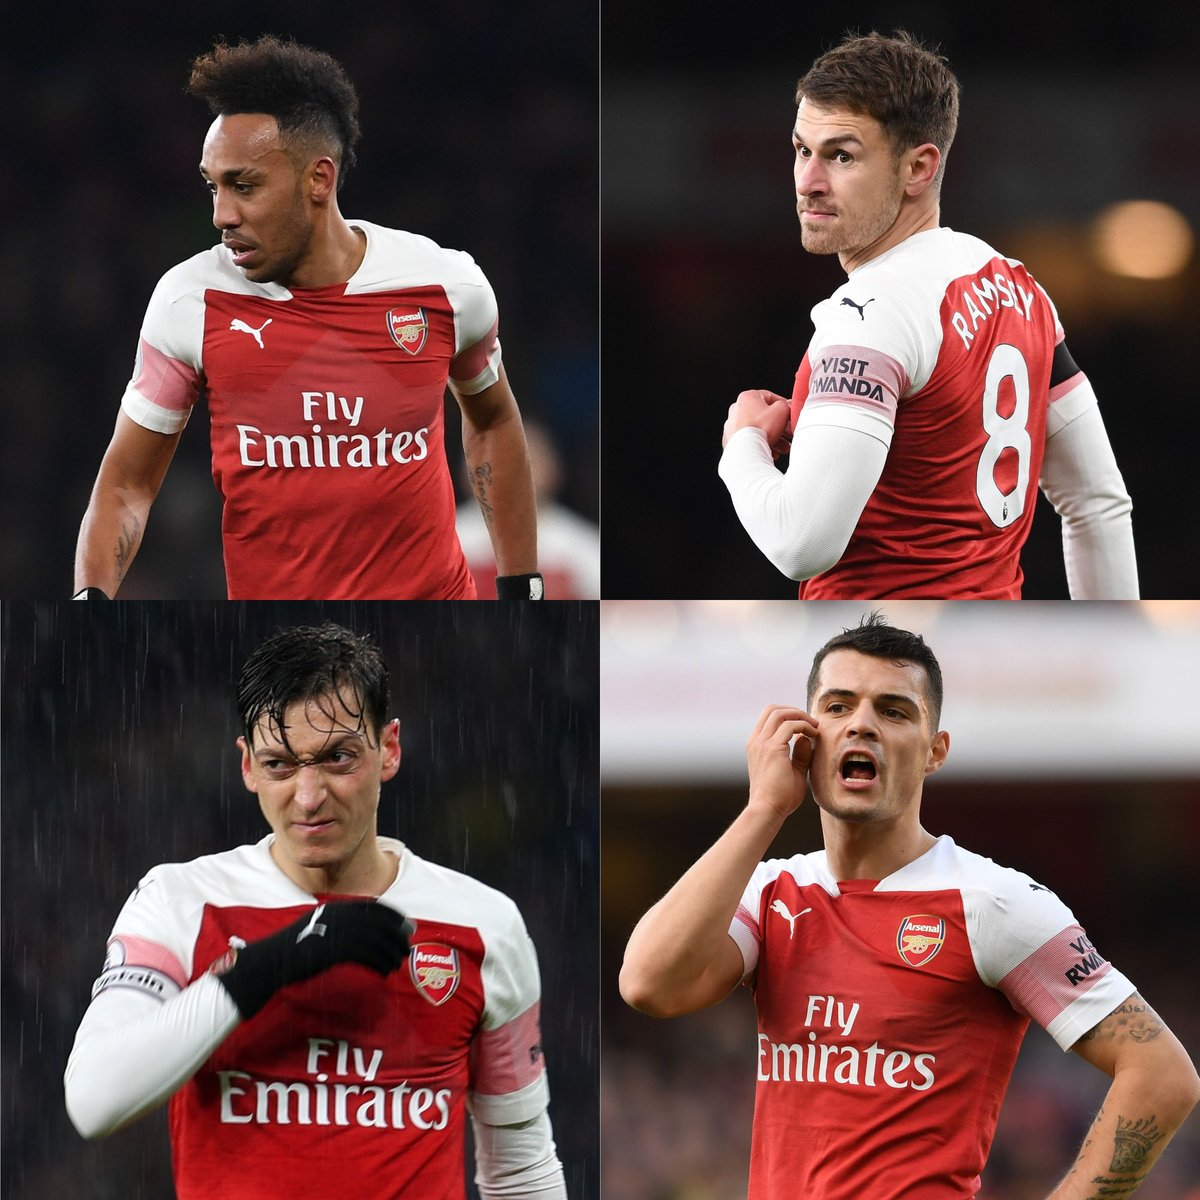 e02db6a93 Arsenal FC on Twitter